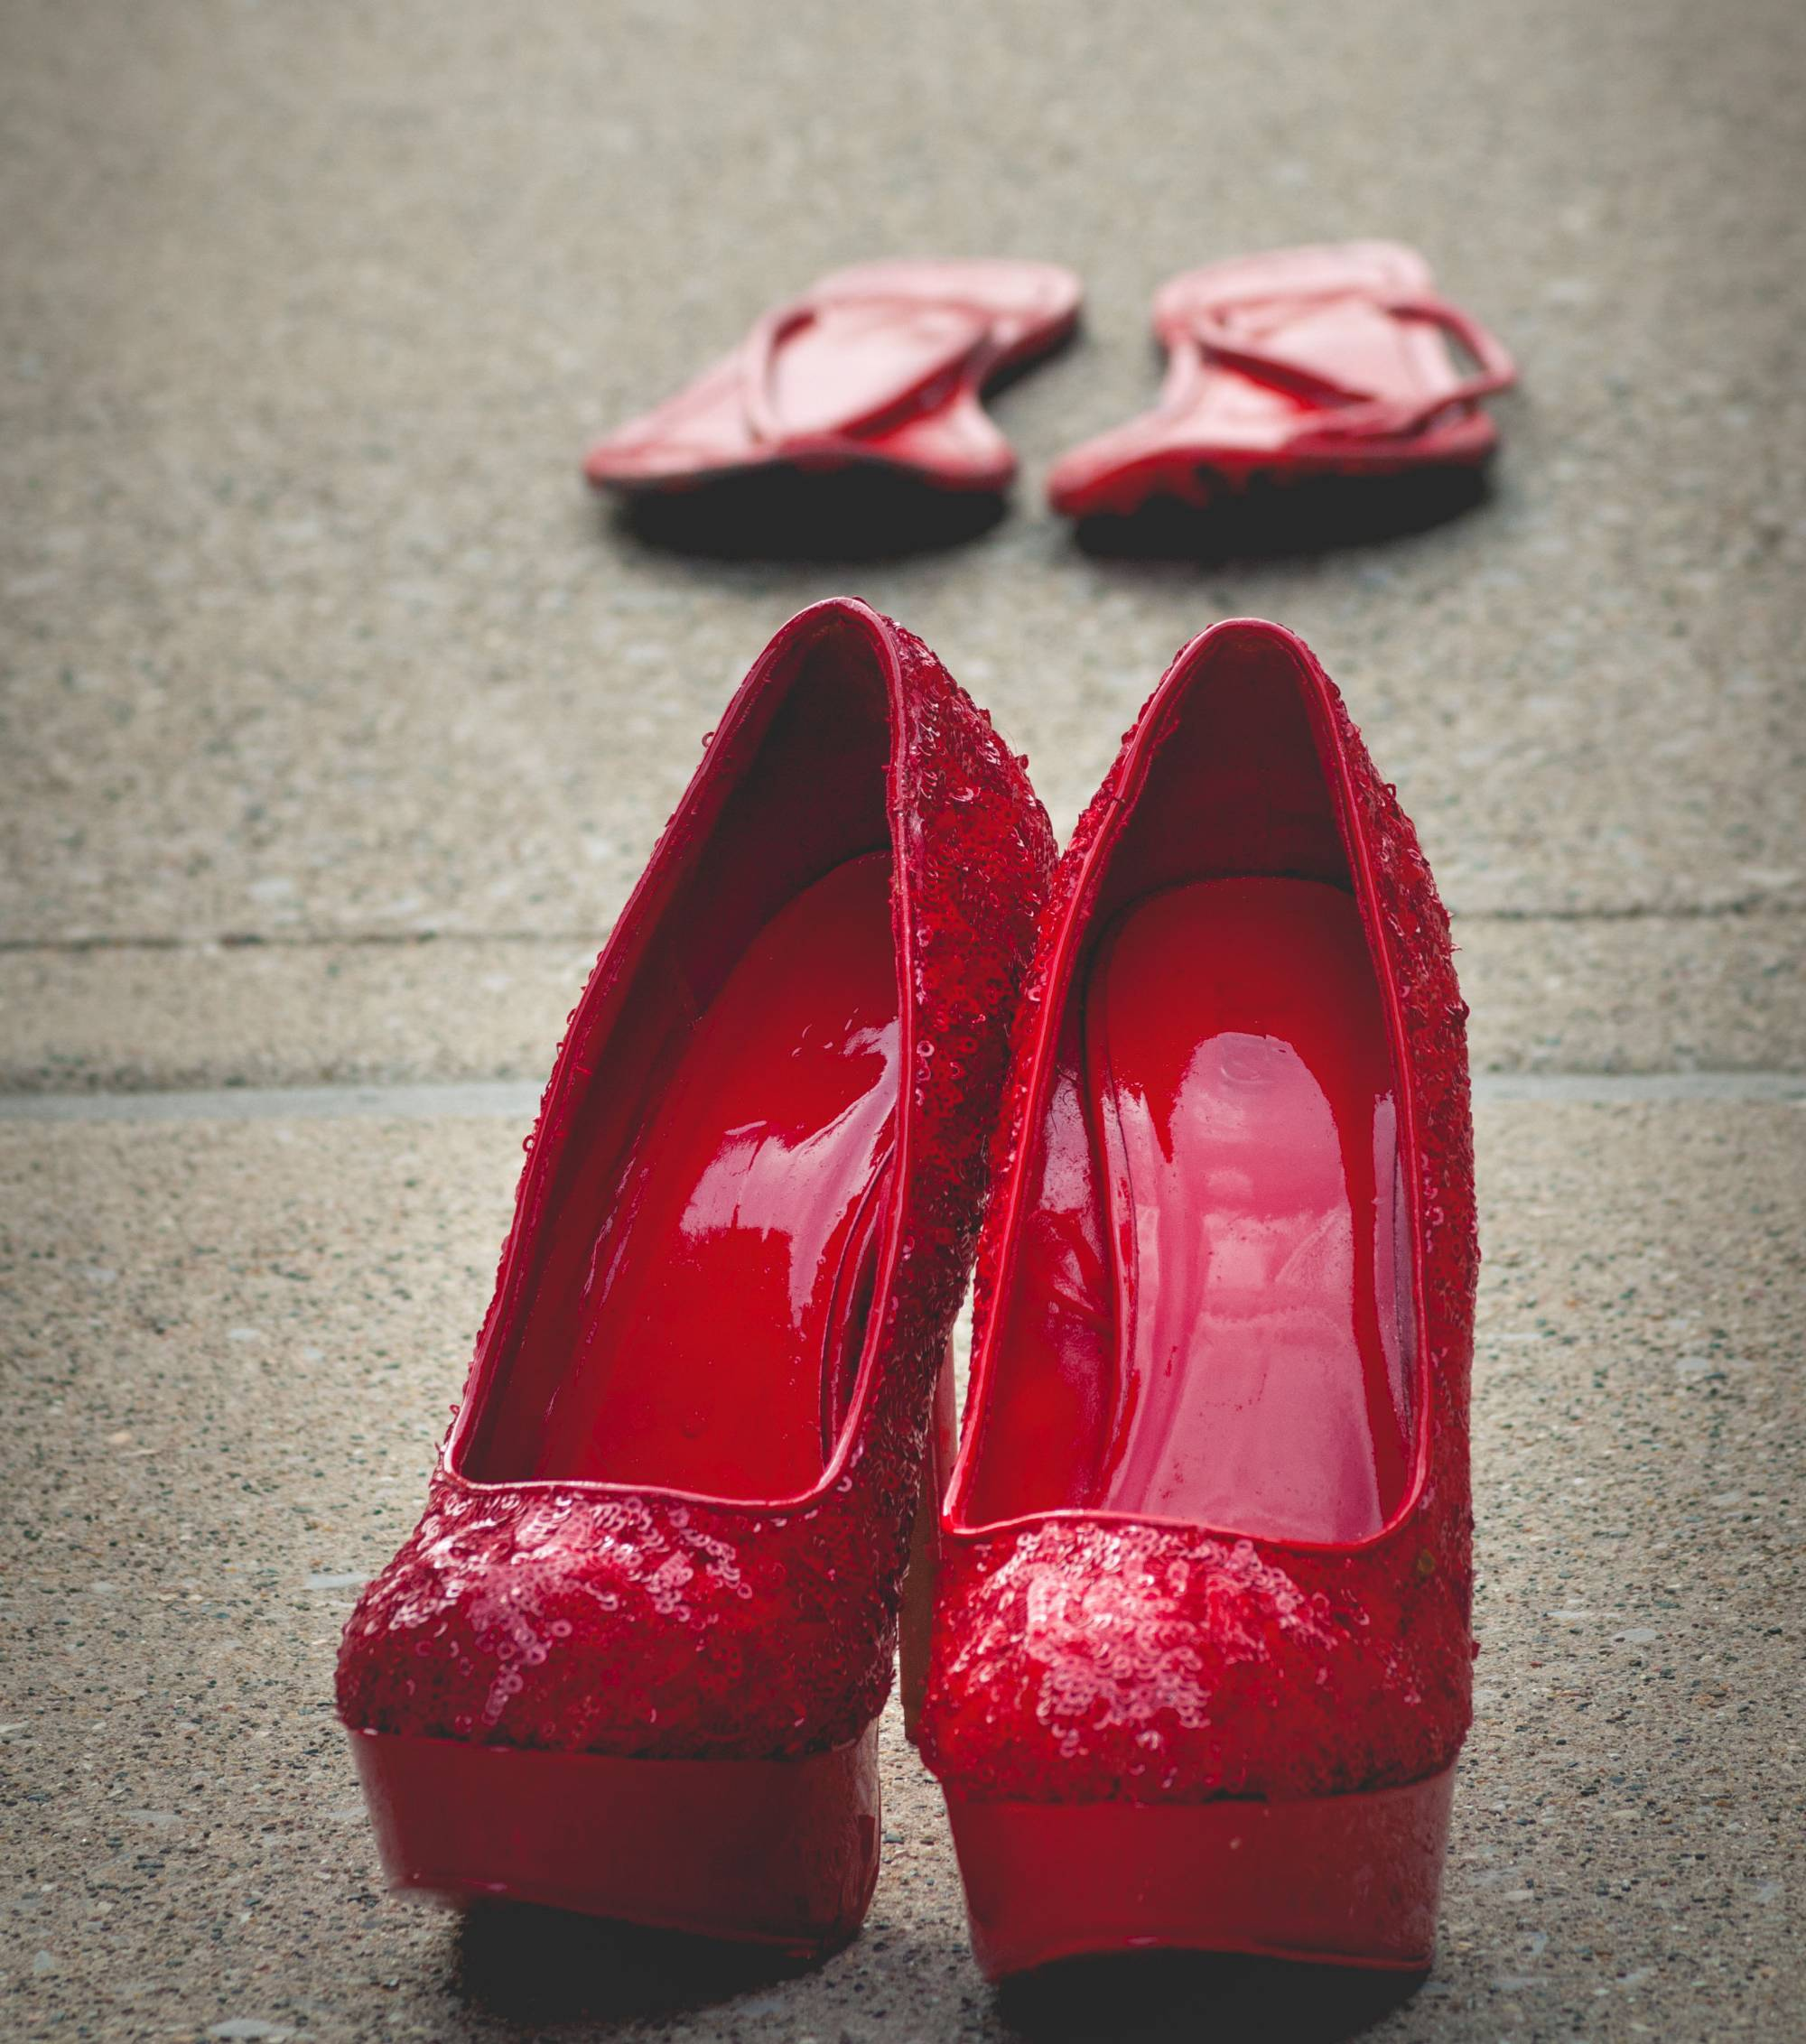 Pair of sequin heels painted red, sitting on pavement in courtyard